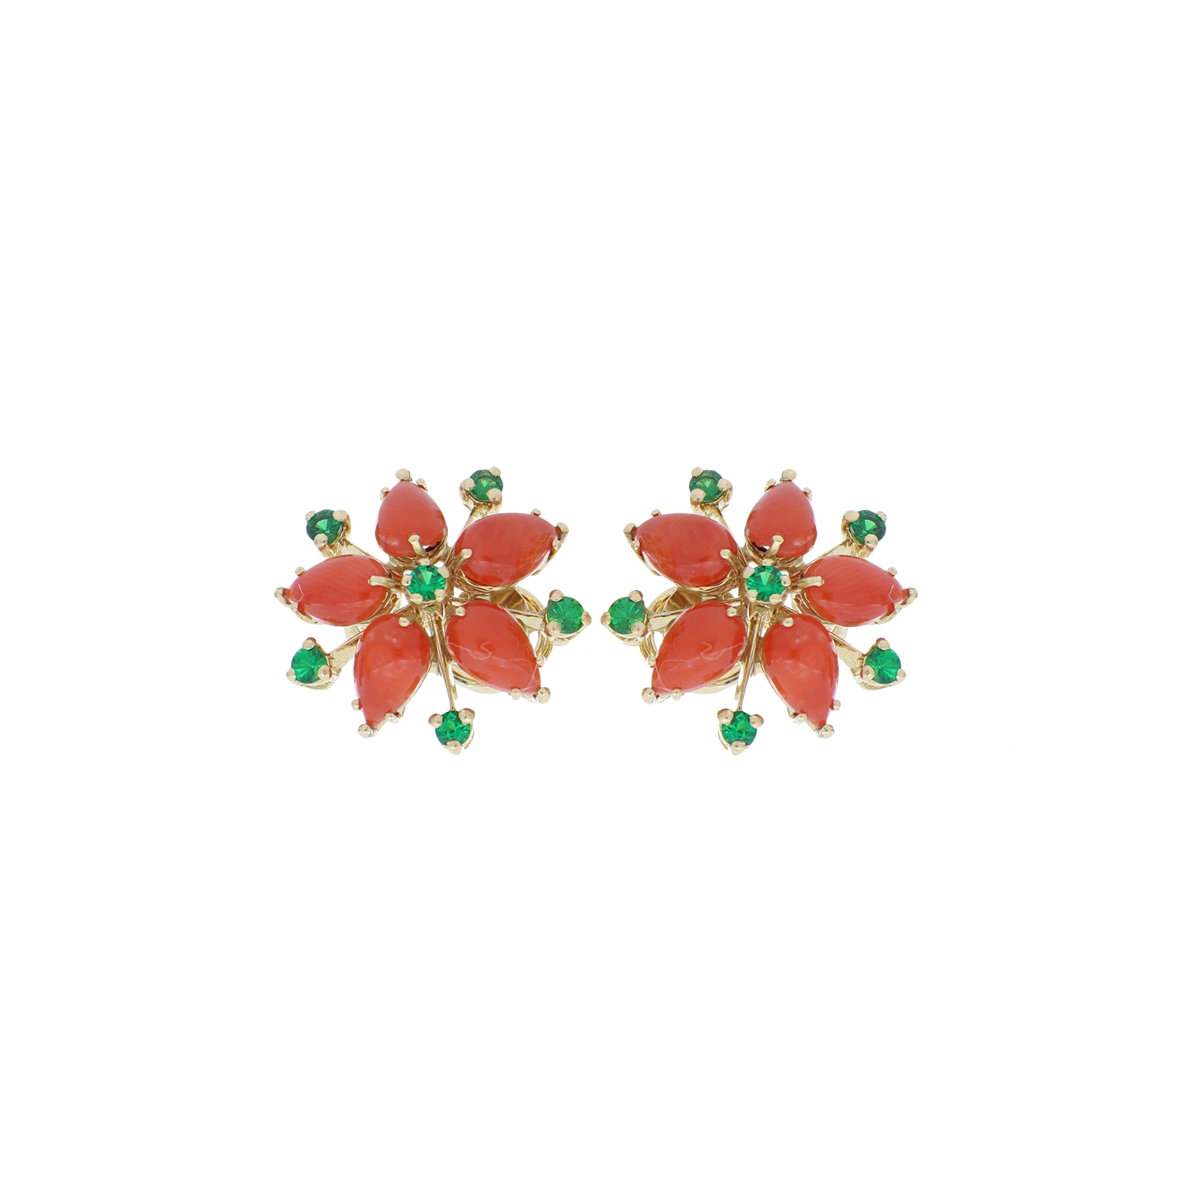 Coral Flower Earrings with Tsavorite Accents